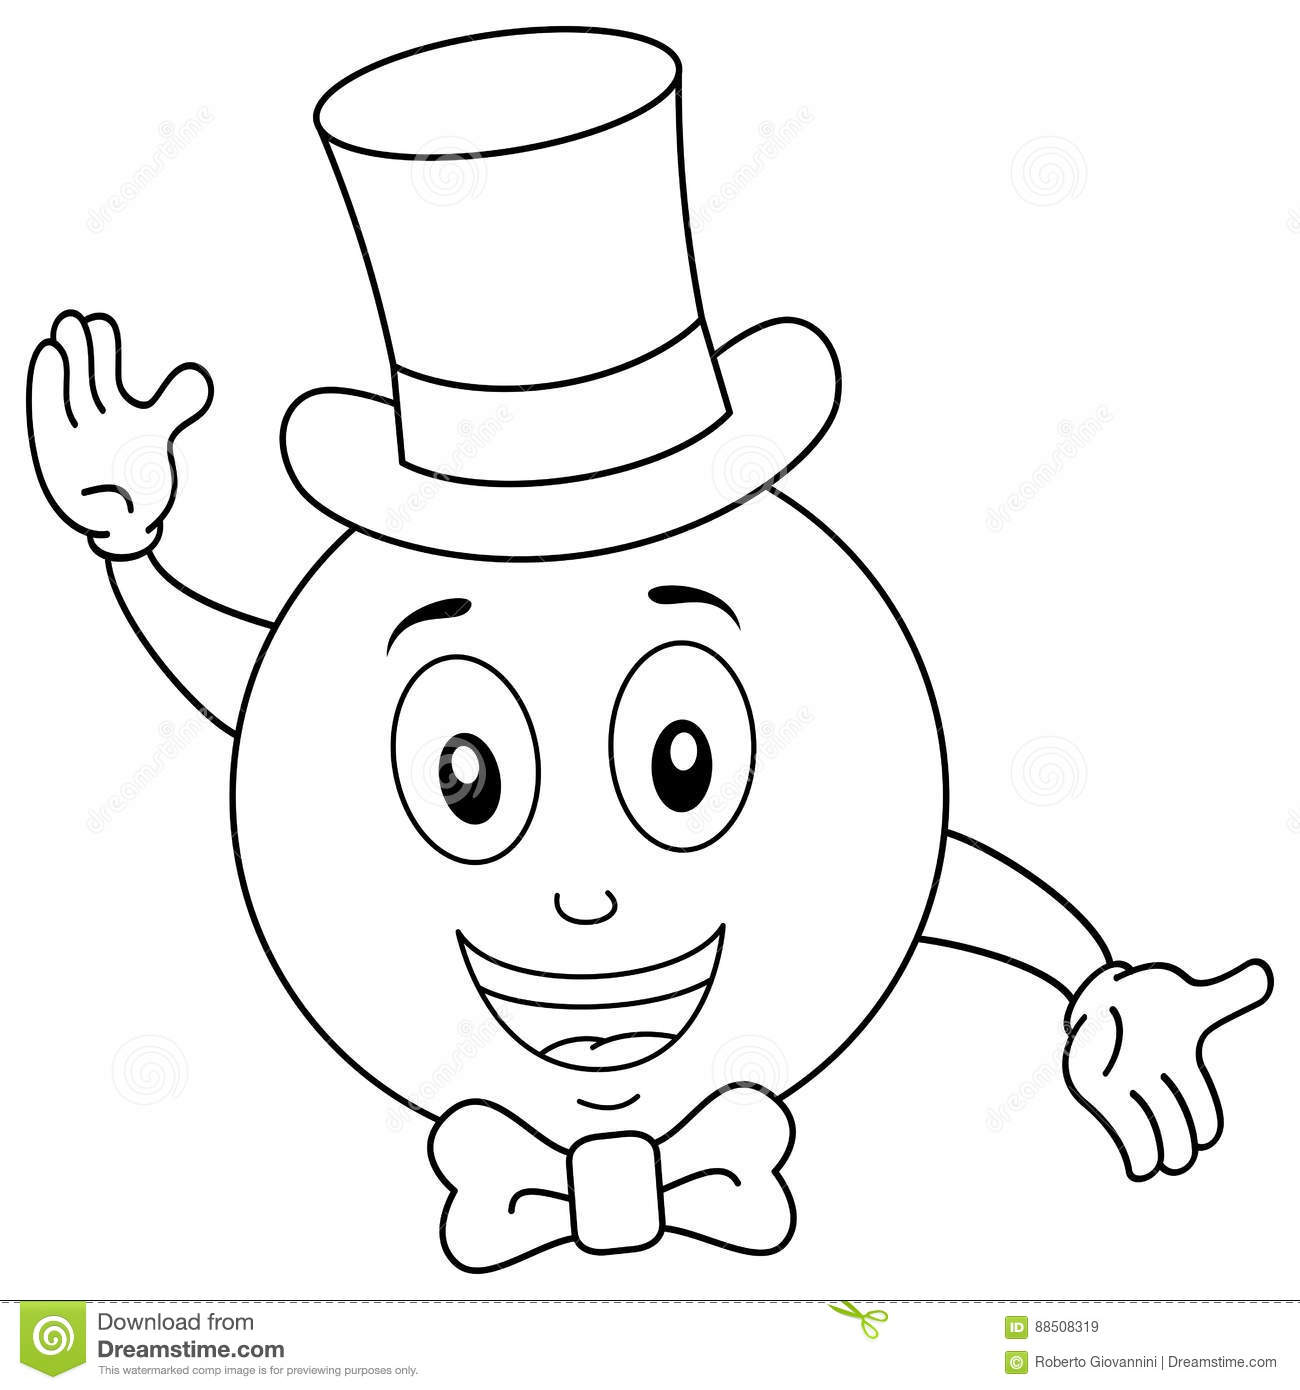 Coloring Smiley With Top Hat And Bow Tie Cartoon Vector